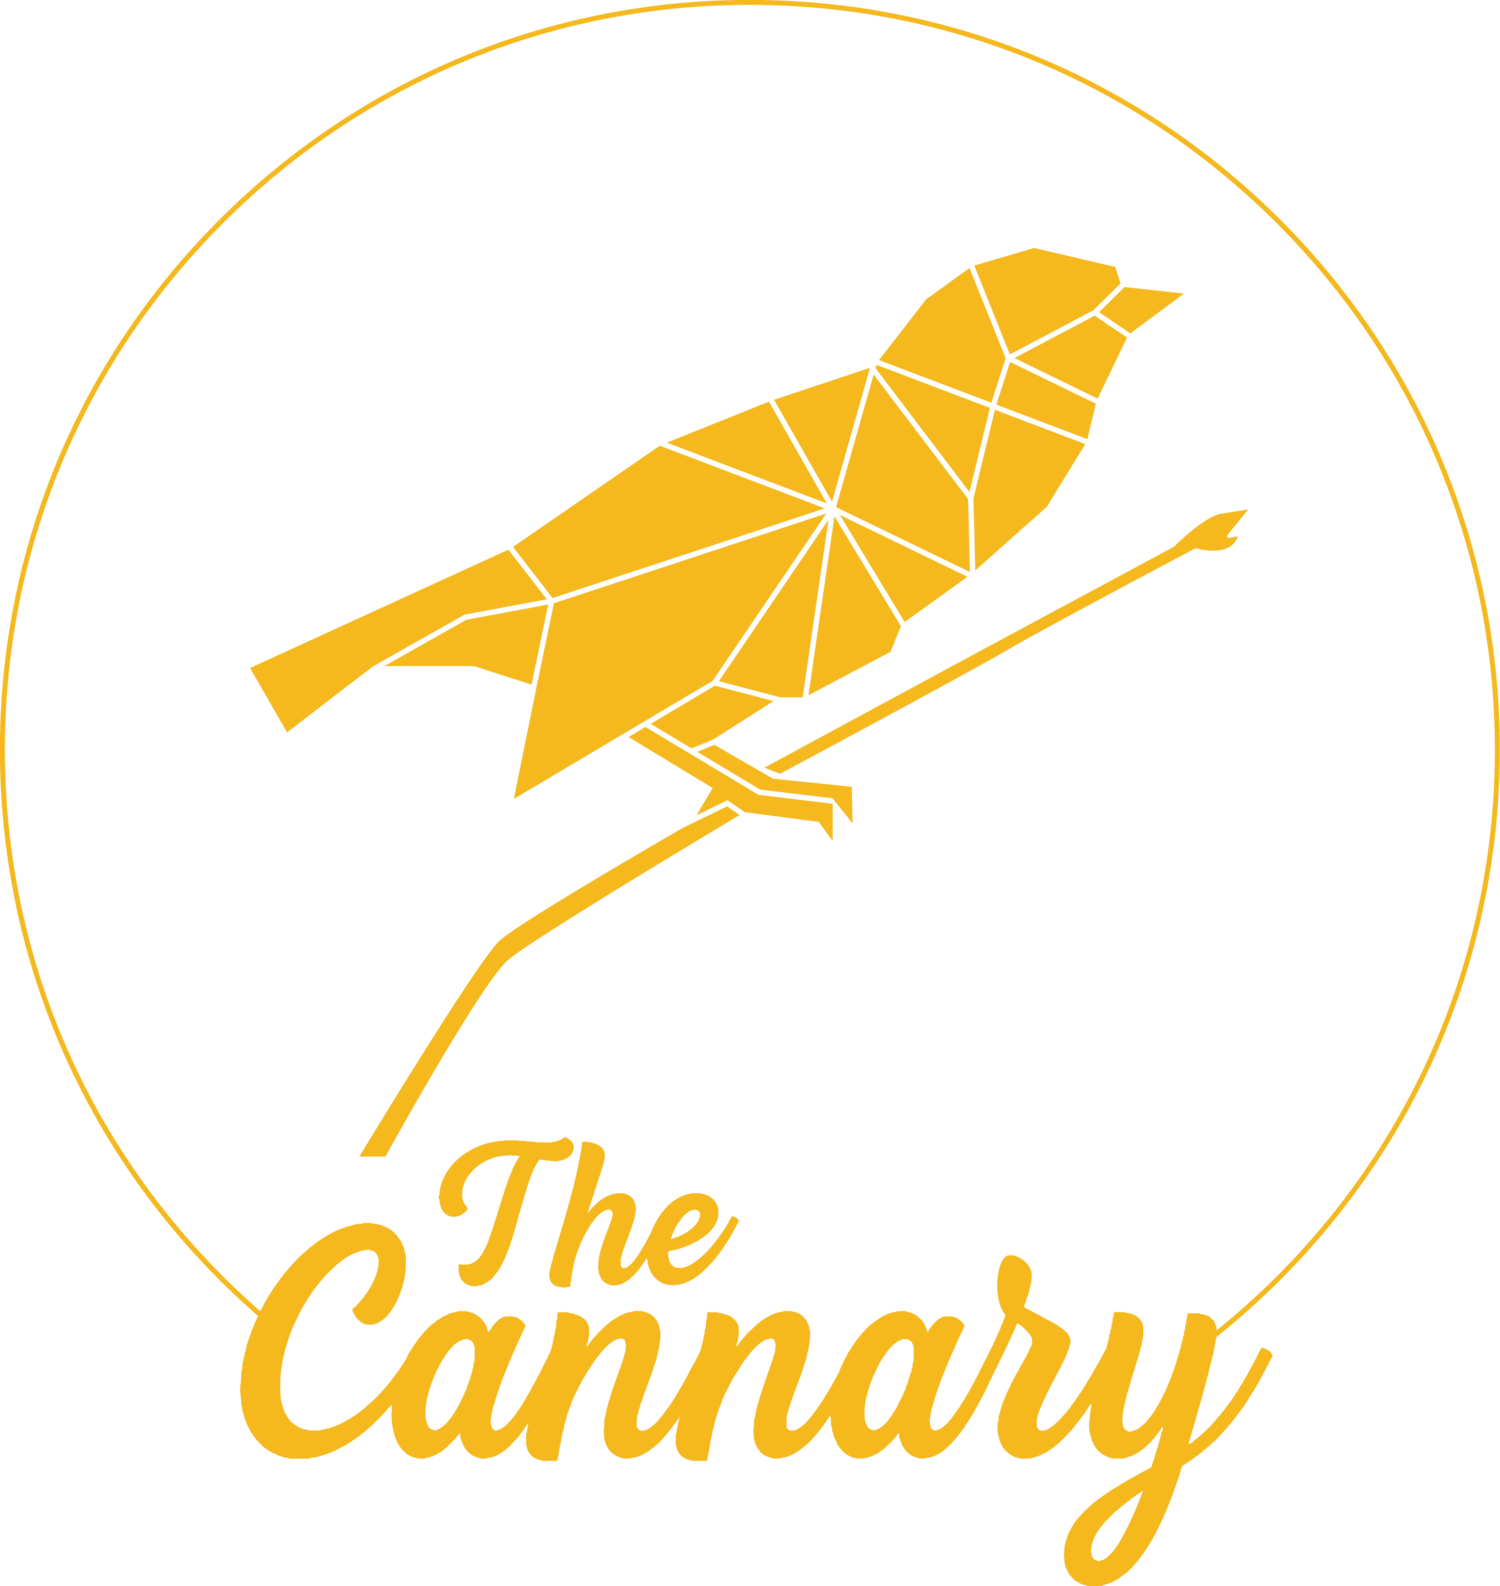 The Cannary